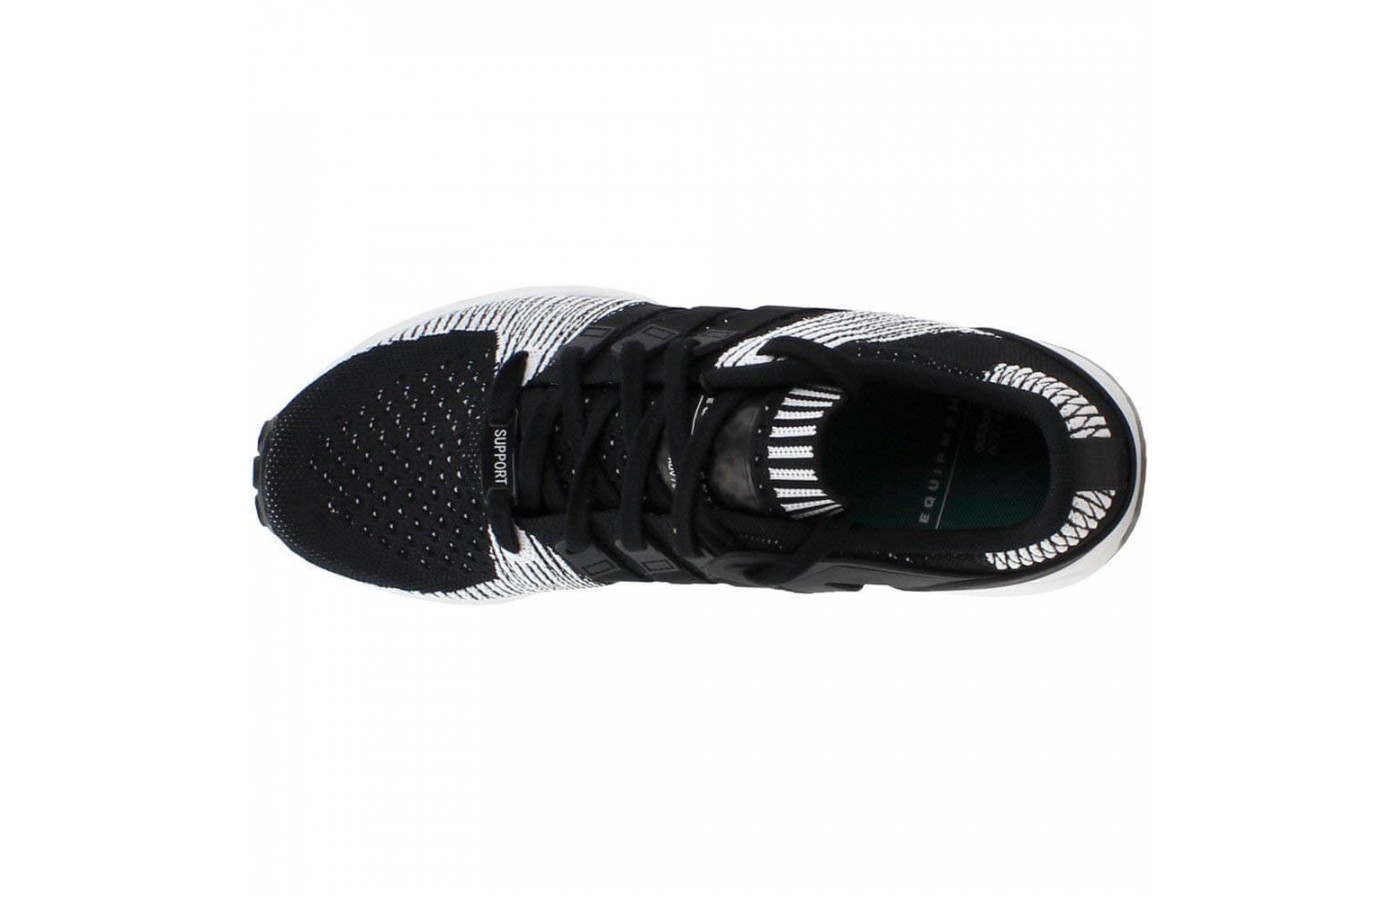 Adidas EQT Support RF Primeknit Top